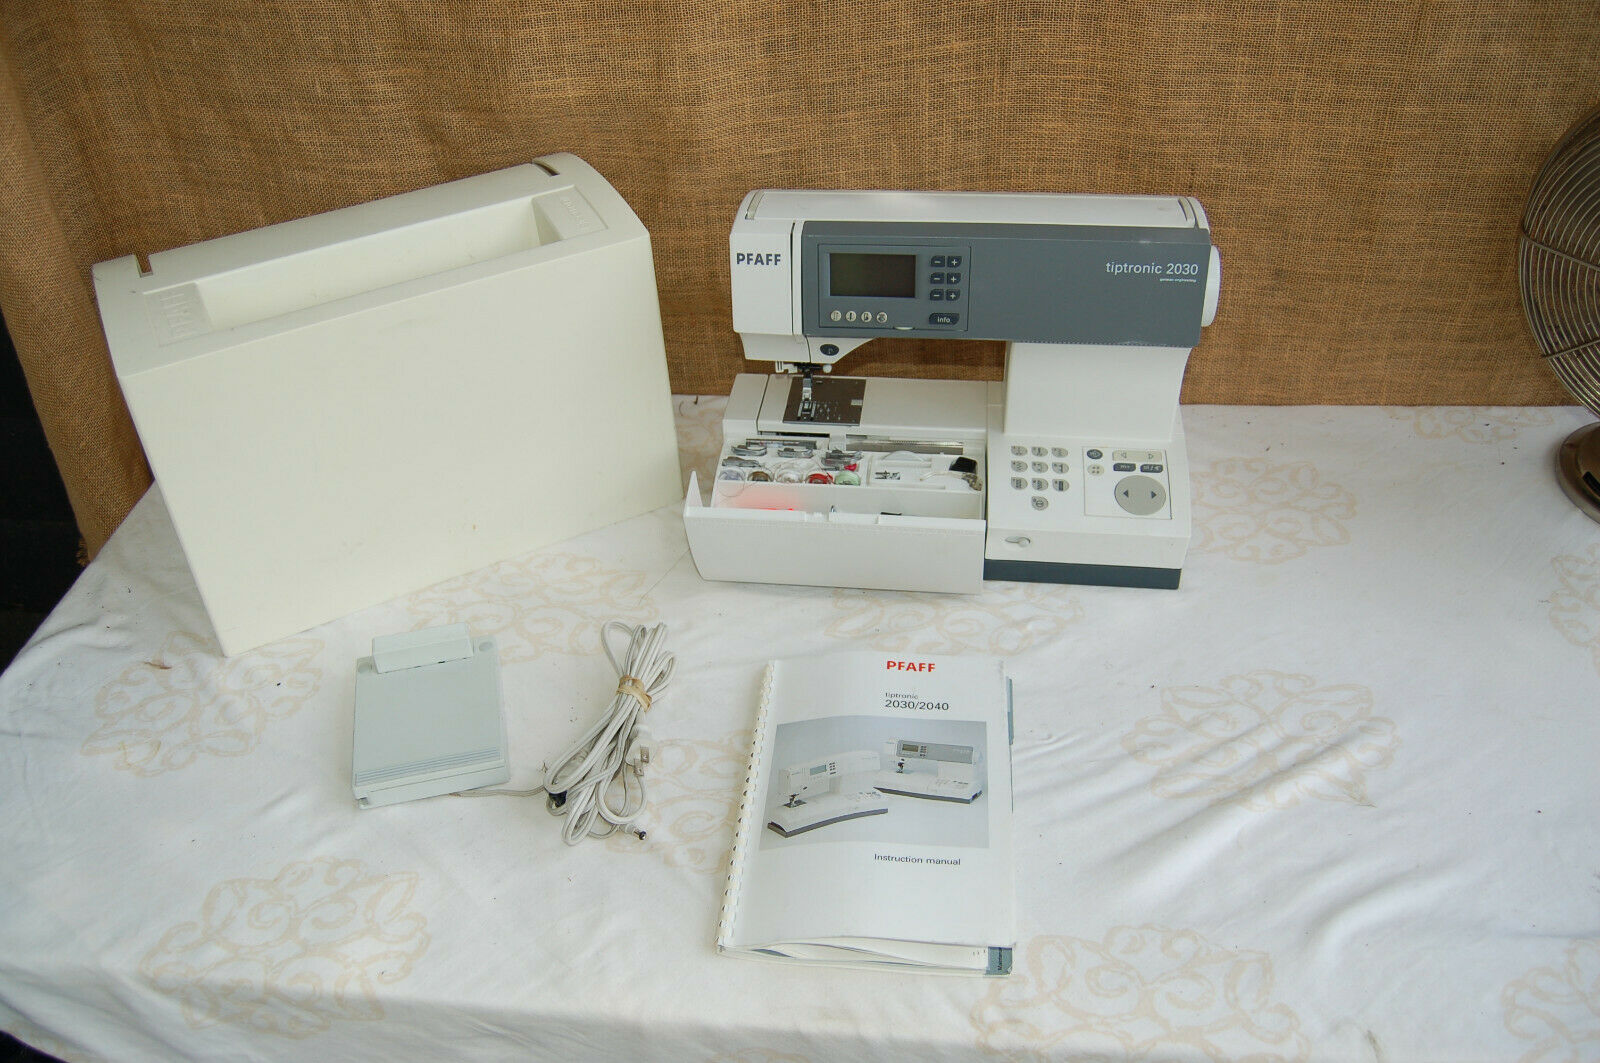 s l1600 - PFAFF TIPTRONIC 2030 SEWING MACHINE W/ ACCESSORIES **VIDEO**!!